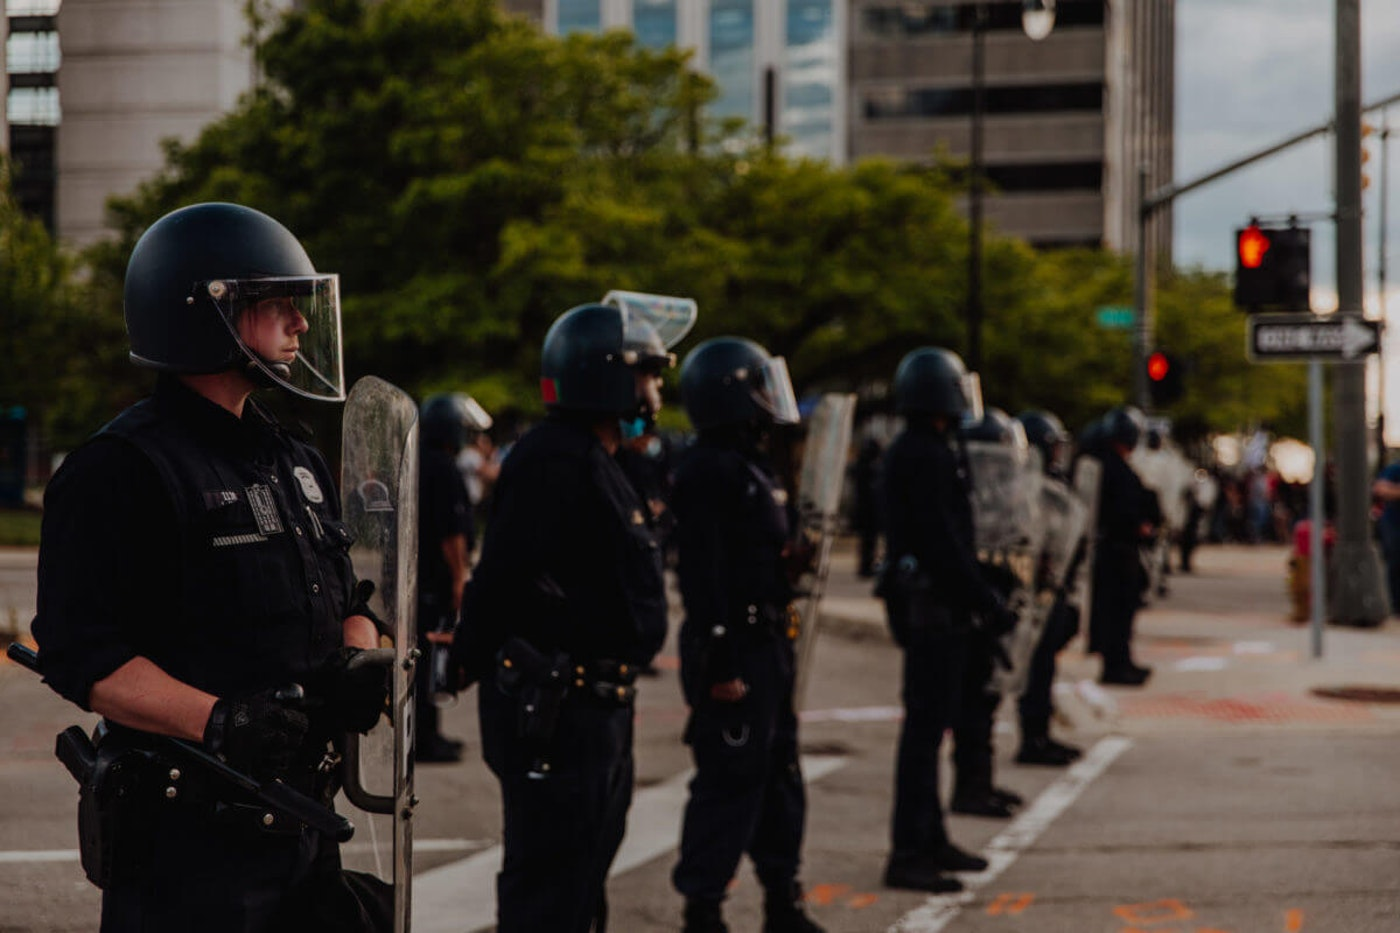 Police in riot gear dispatched to de-escalate a protest in Detroit. (Photo by Franz Knight)